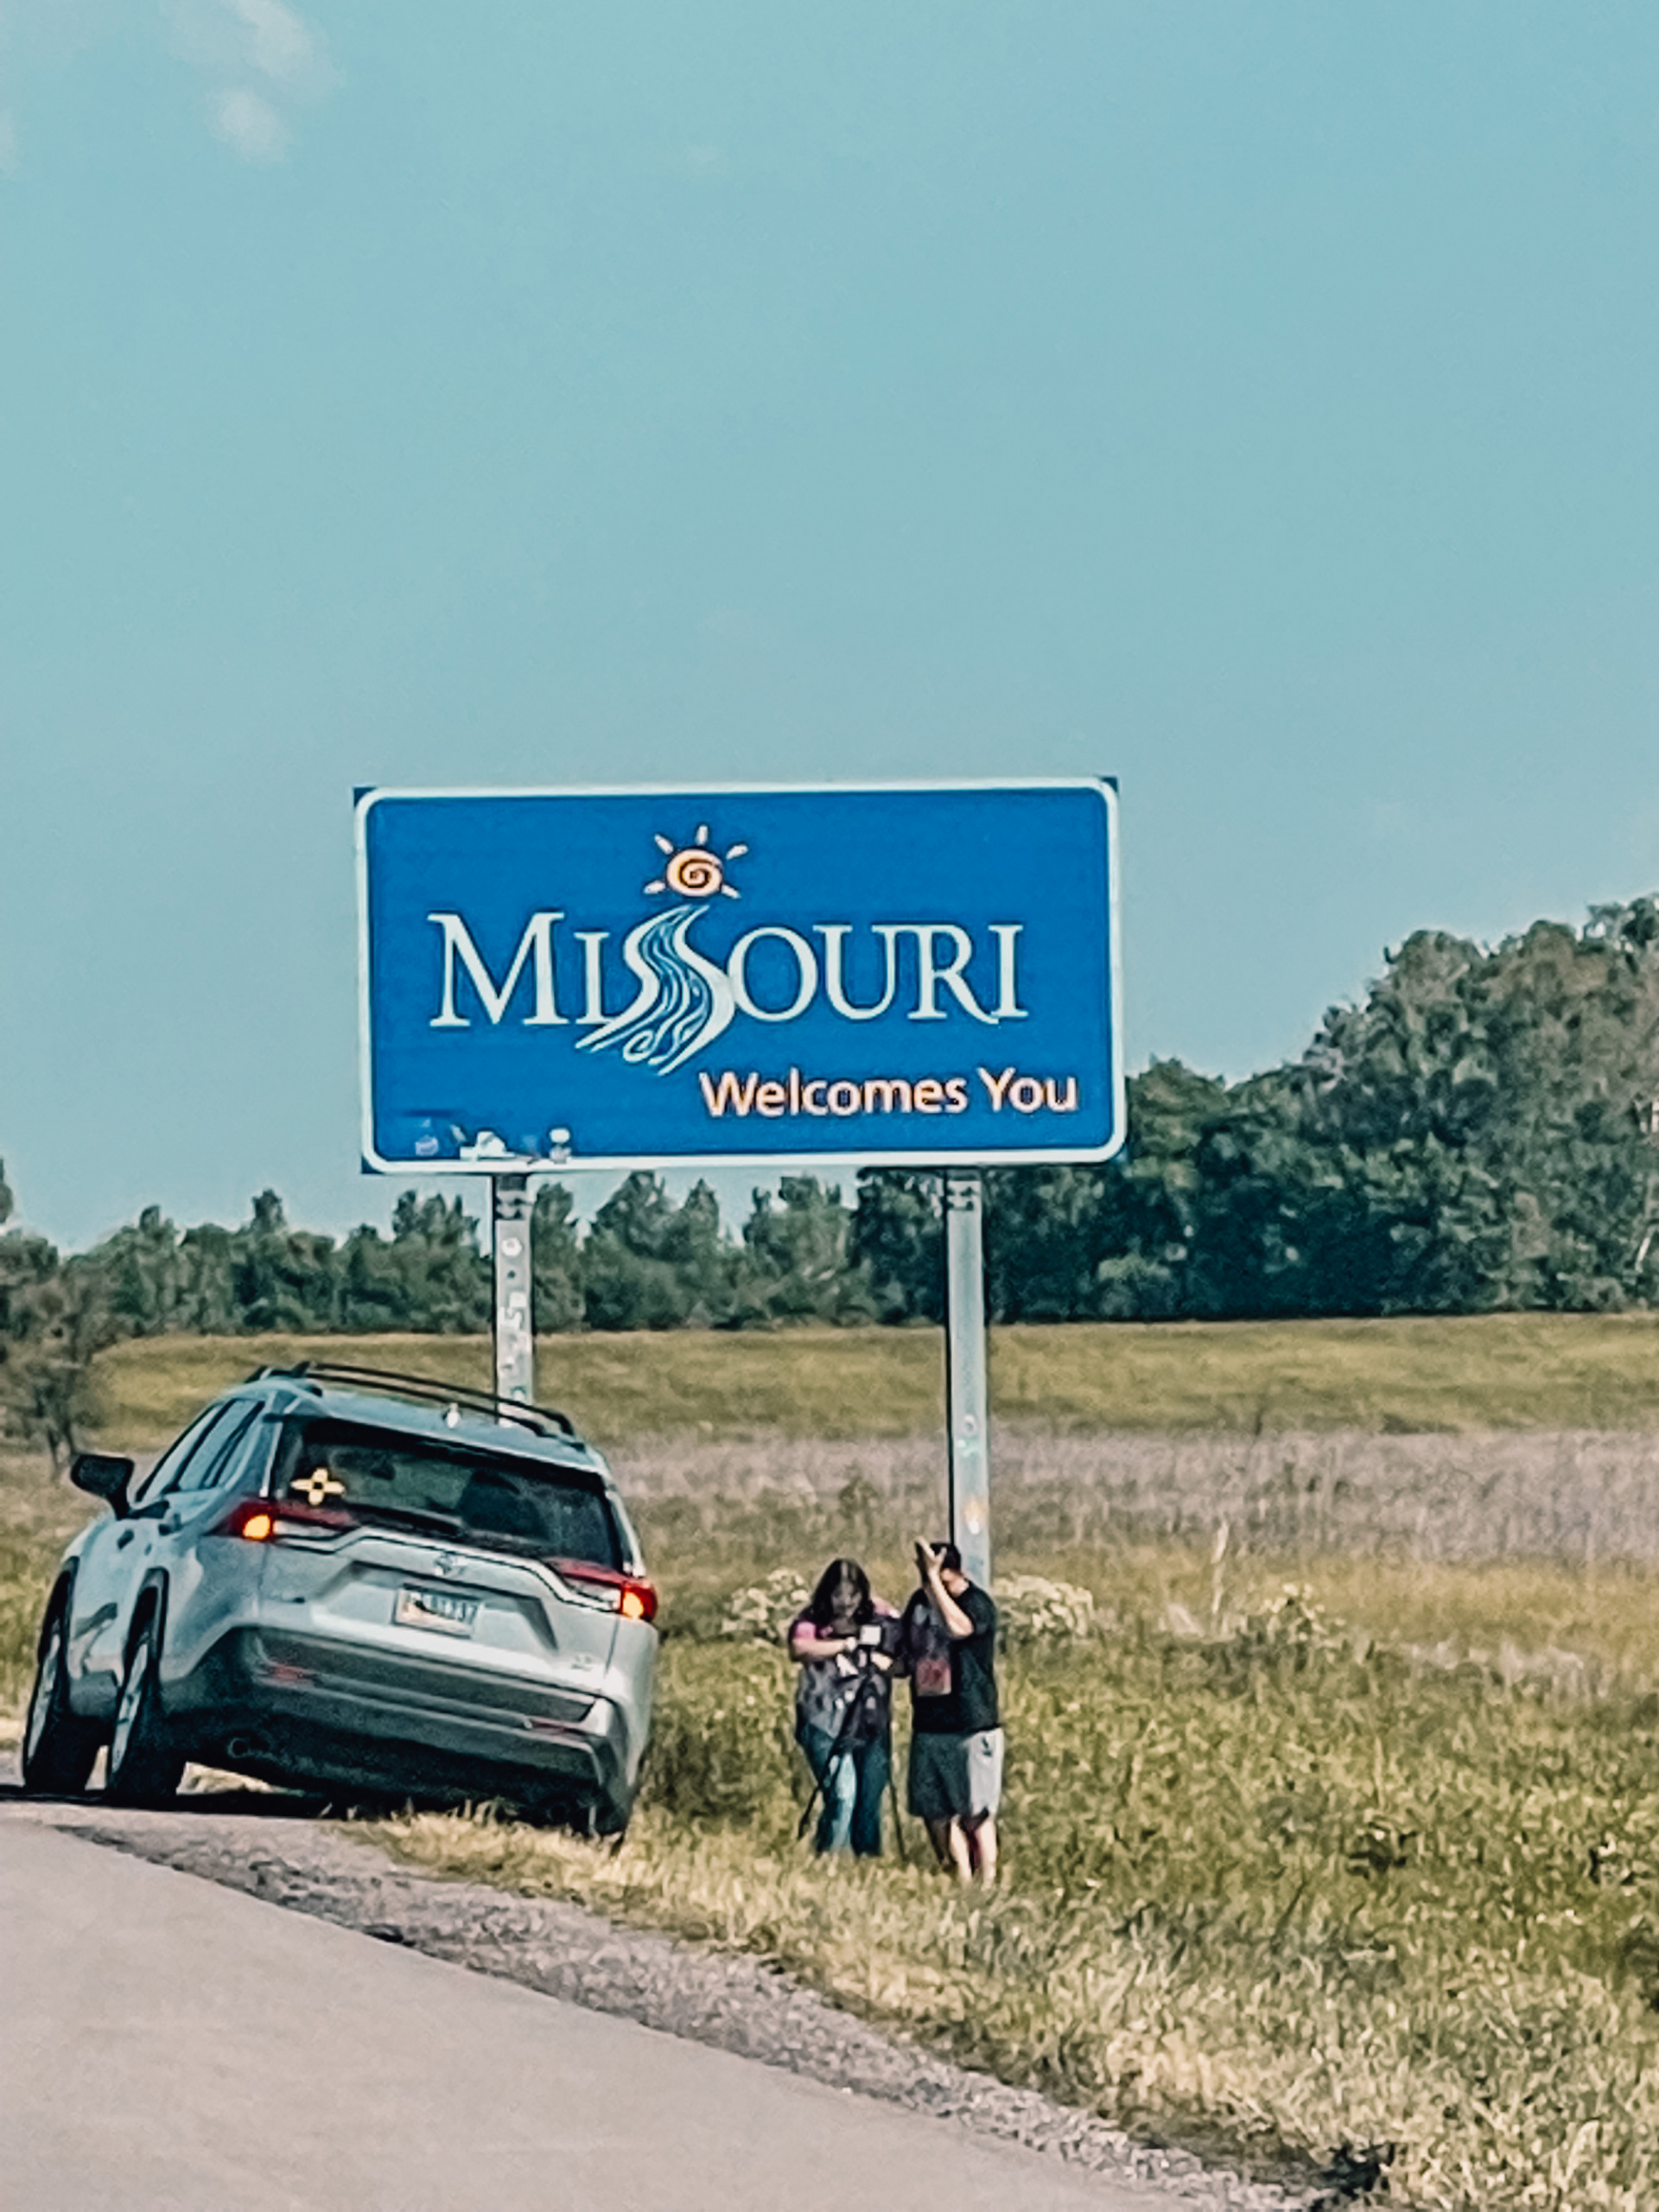 where to stop on a cross-country road trip, best places to stop on a cross country road trip, cross country road trip, west coast to east coast road trip, erin busbee, traveling with kids, how to travel with kids, how to travel with a dog, cross country road trip with kids, missouri state line welcome sign, cross country busbee style, family road trip